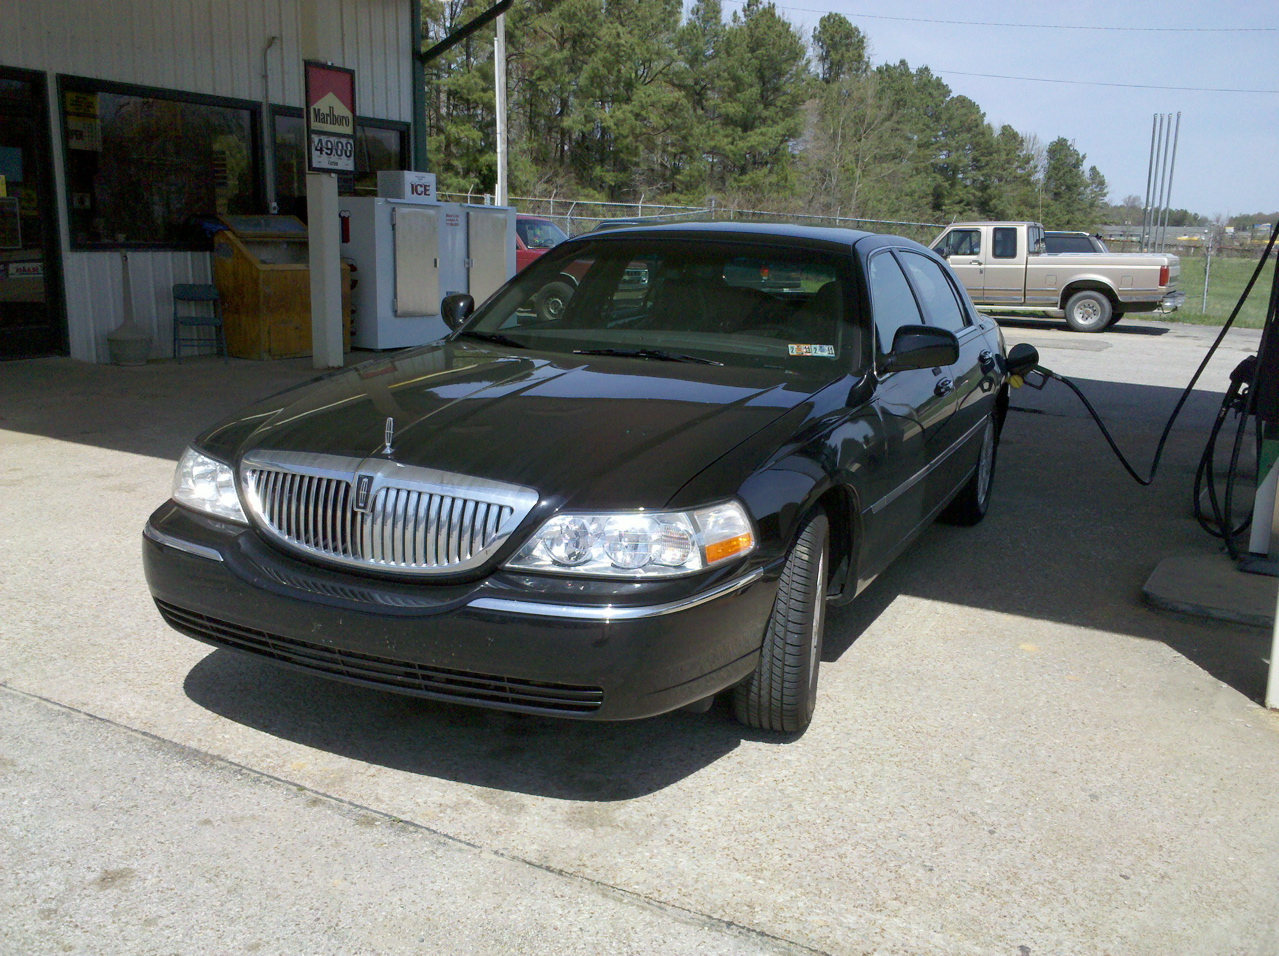 2010 Lincoln Town Car Image 12